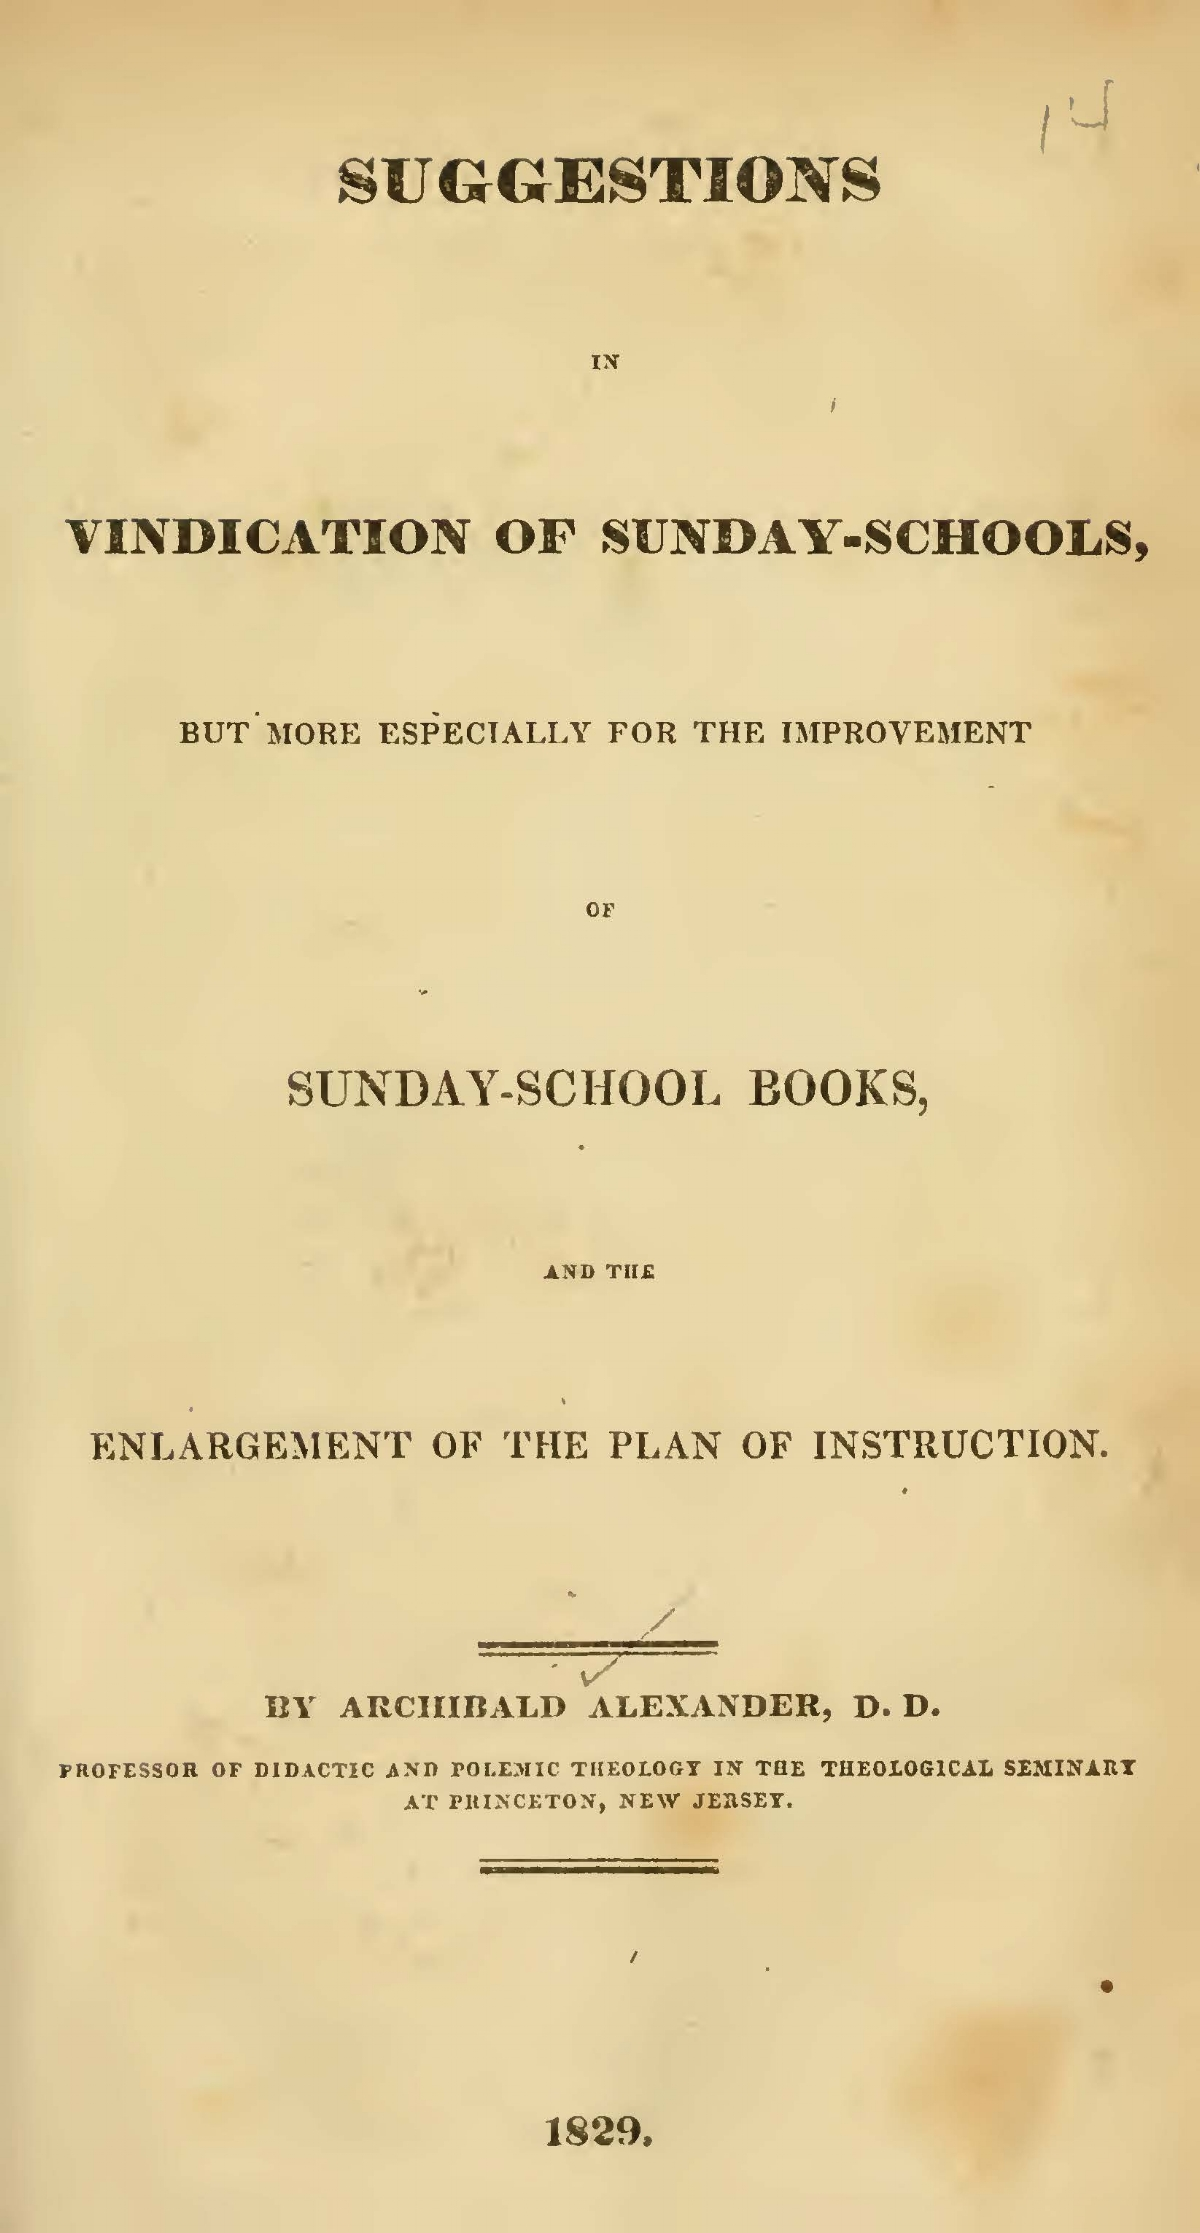 Alexander, Archibald, Suggestions in Vindication of Sunday-Schools Title Page.jpg